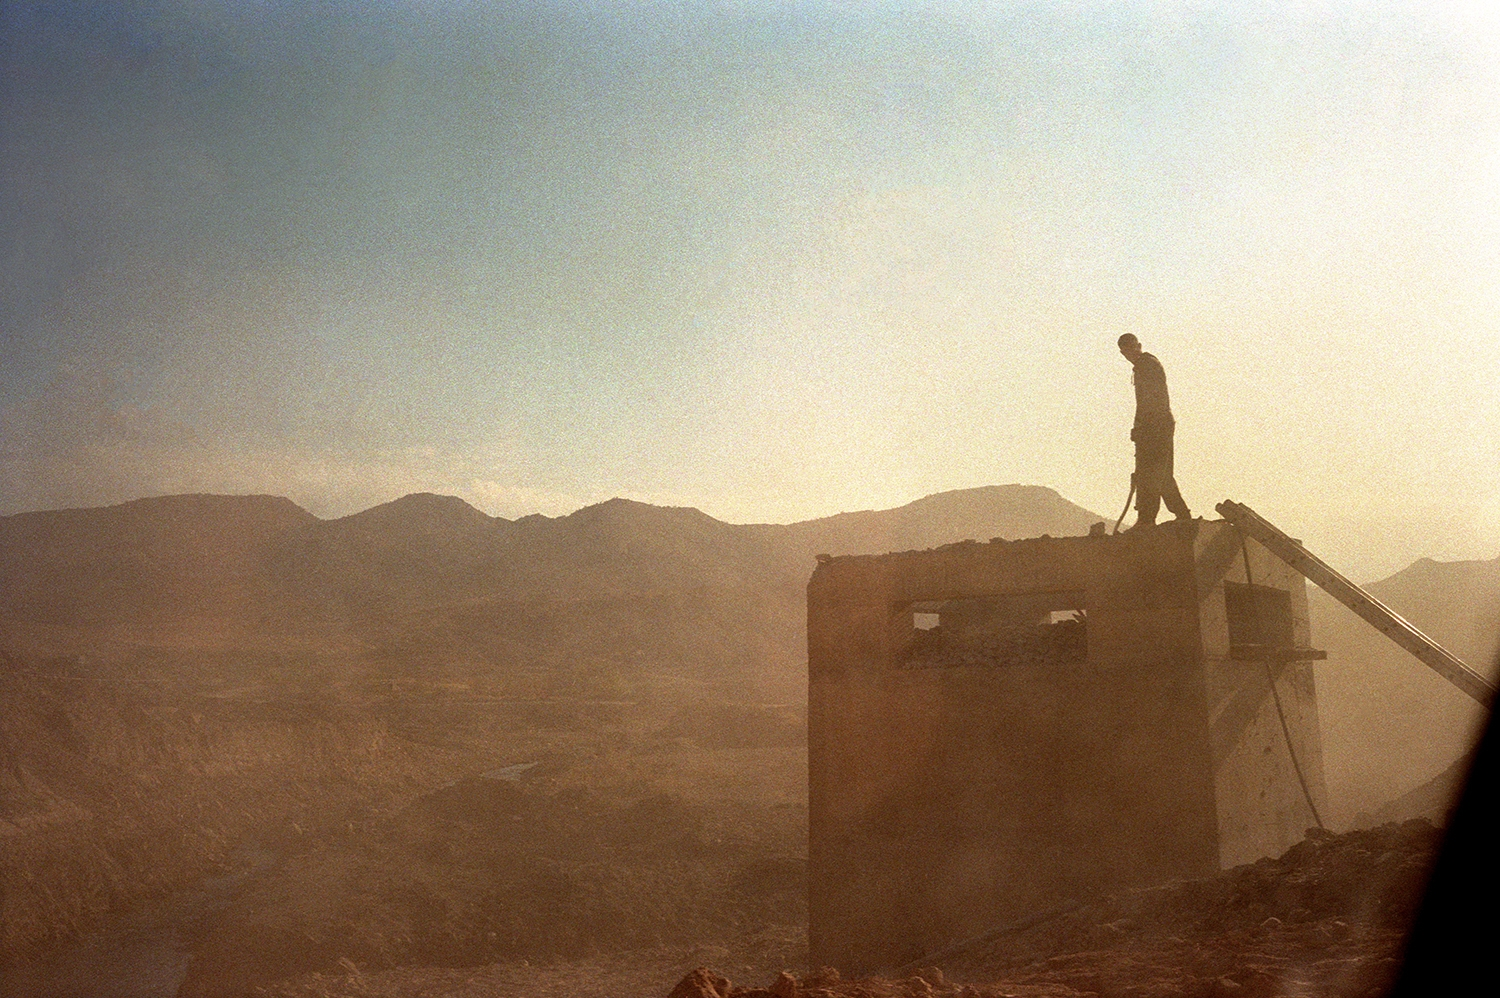 May 2014 - Koya mountains, Iraq - A man works on the roof of a building on the side of the street between Erbil and Sulaiymaniyah.